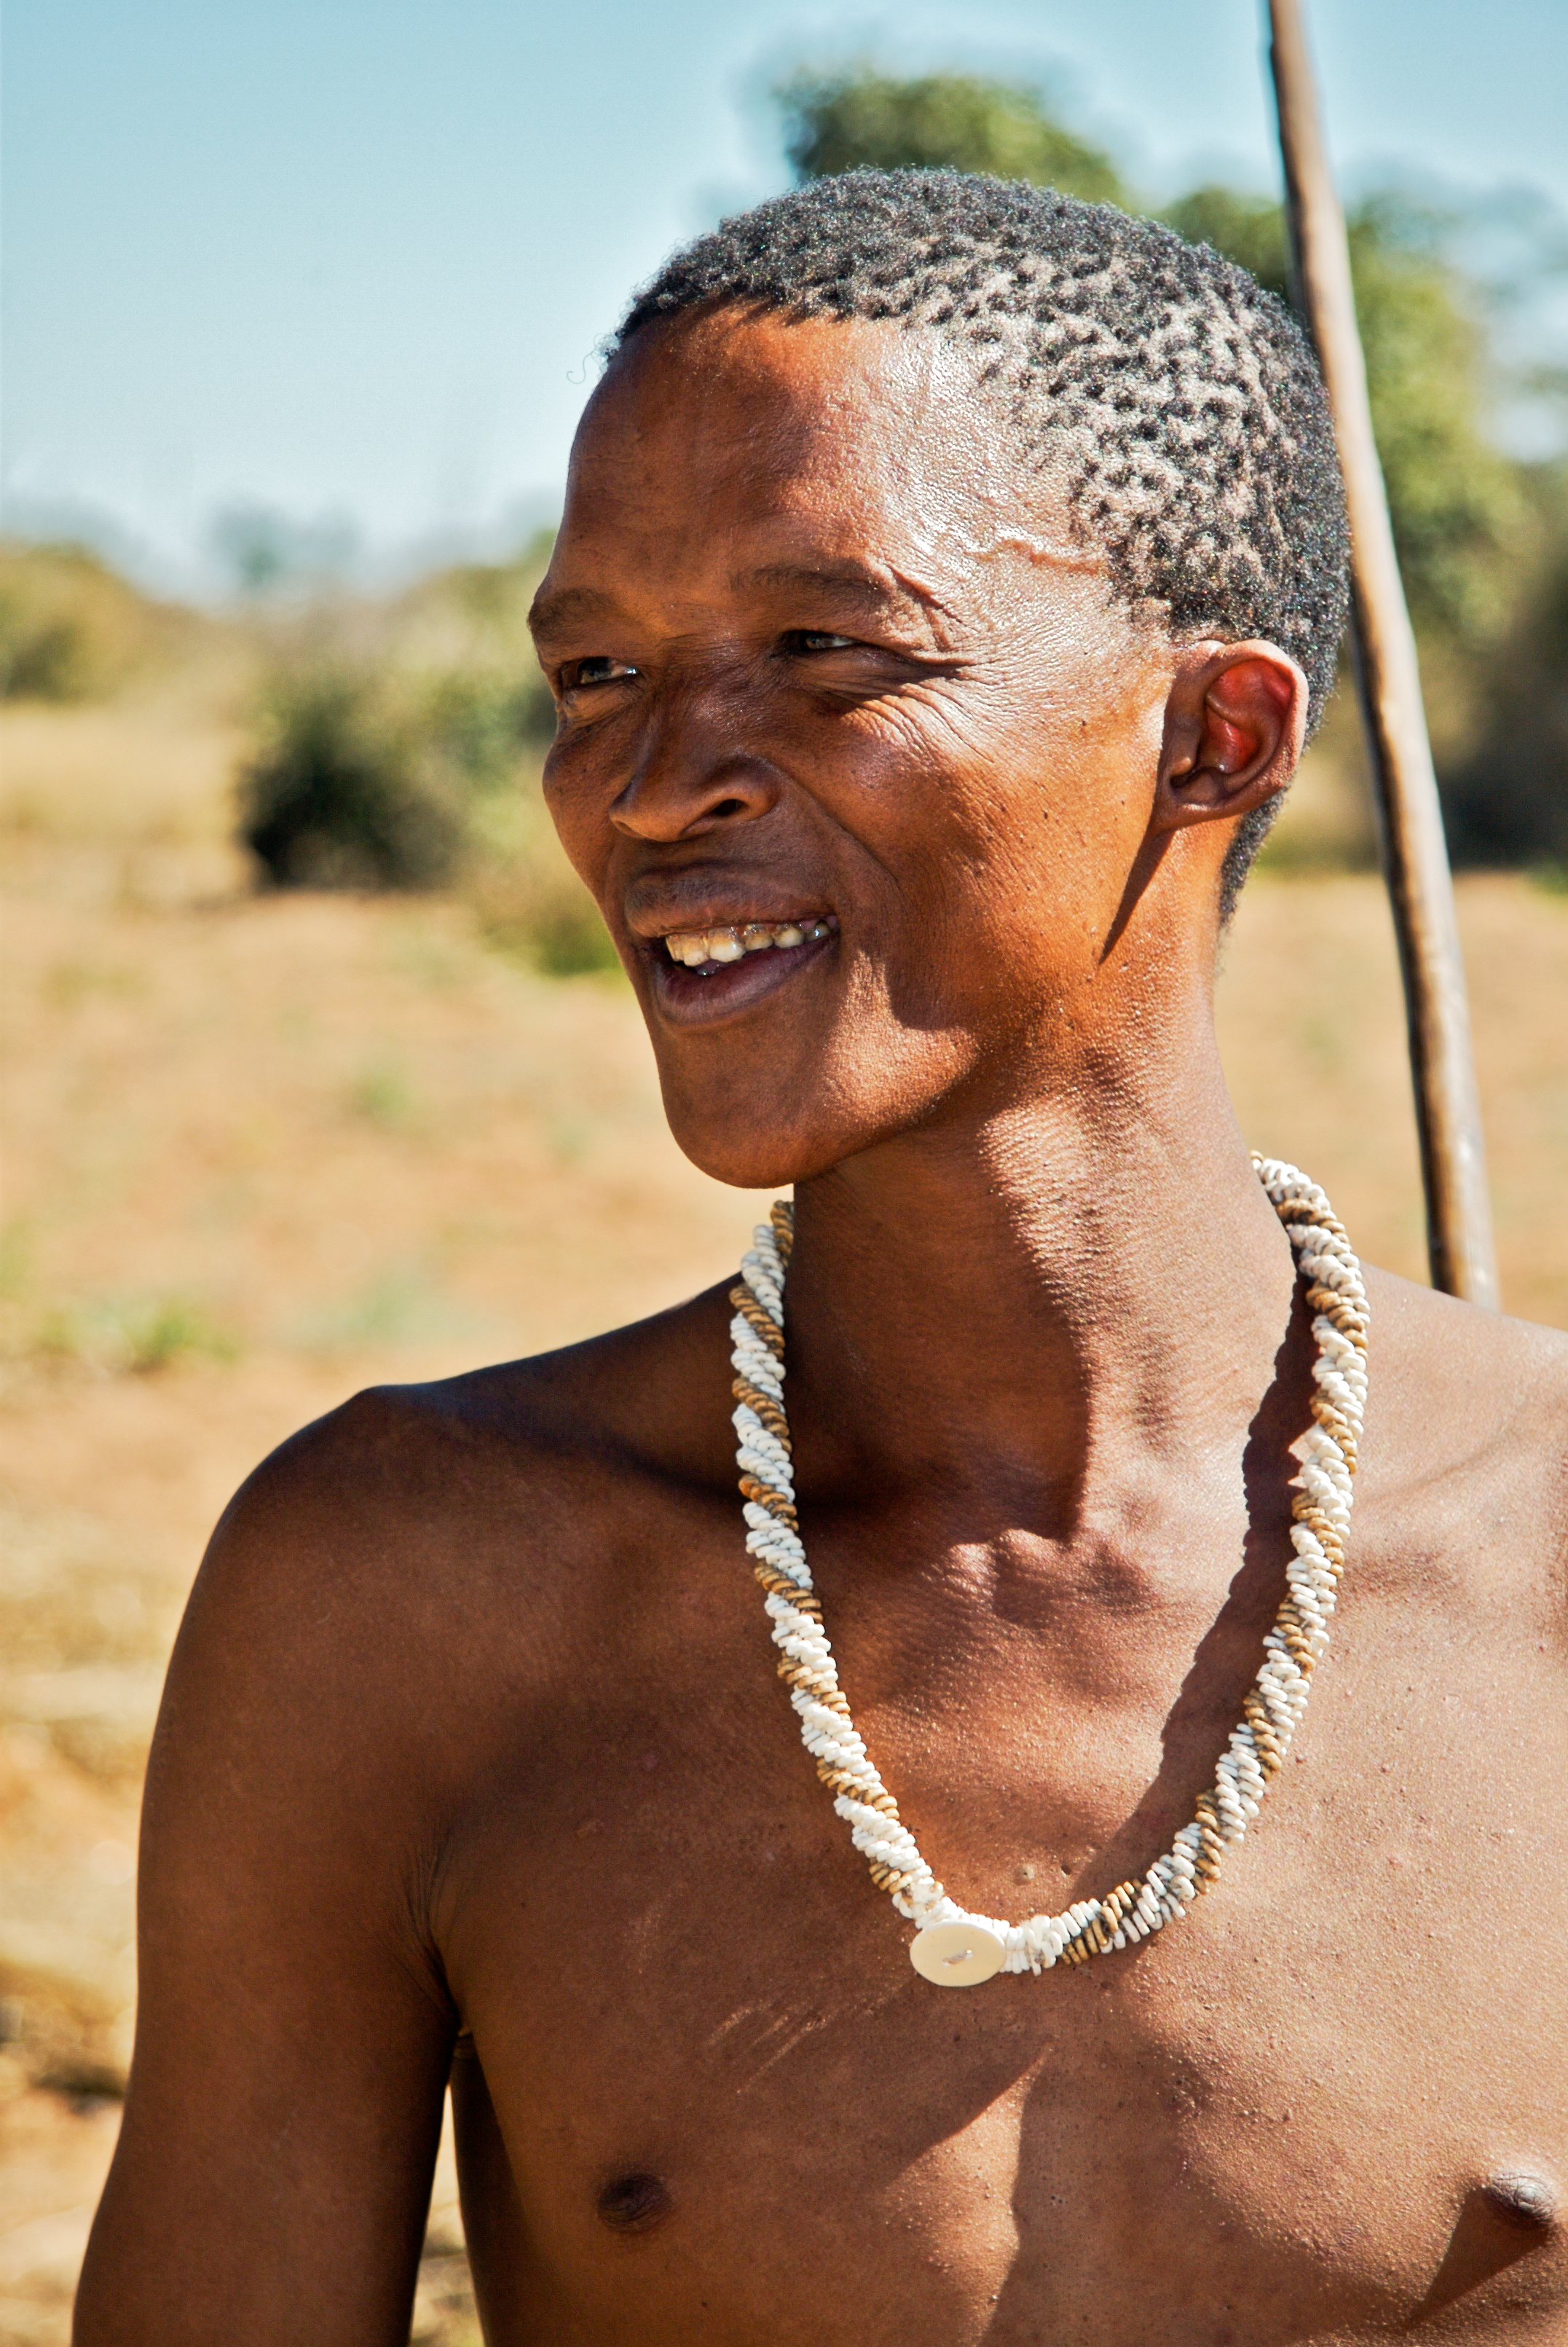 A San man wearing traditional necklace